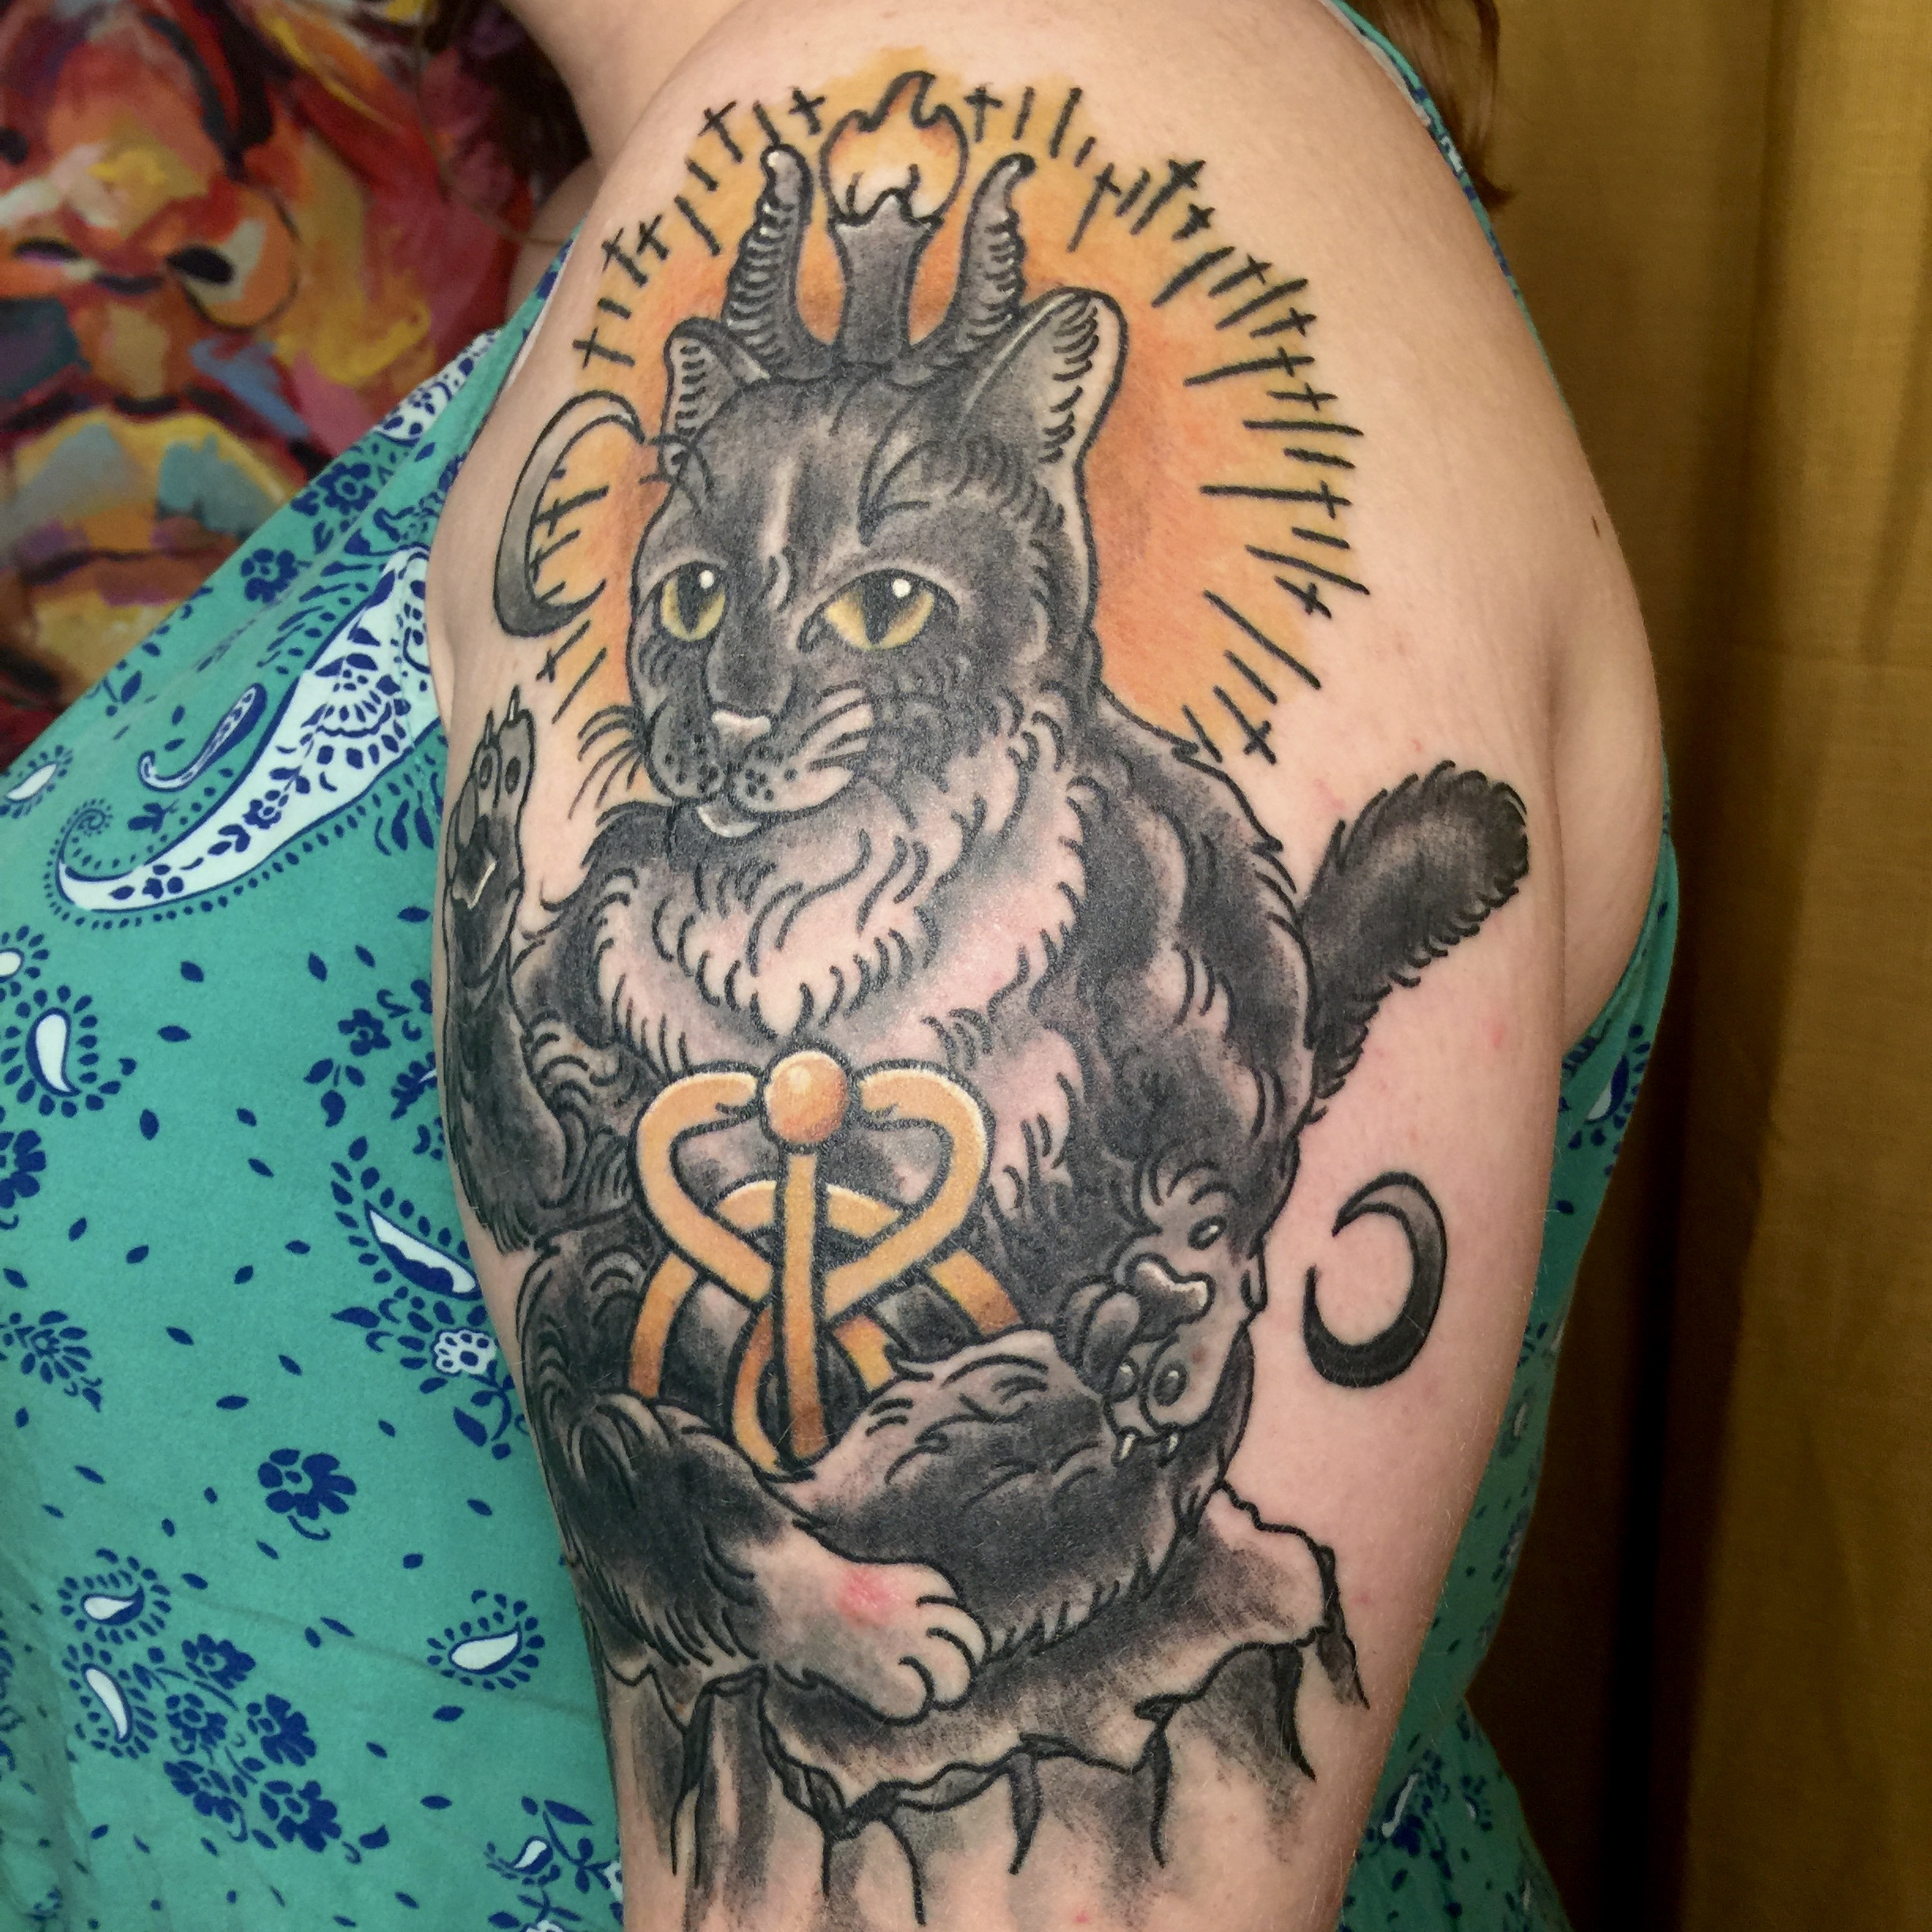 A tattoo of Baphomet as a cat